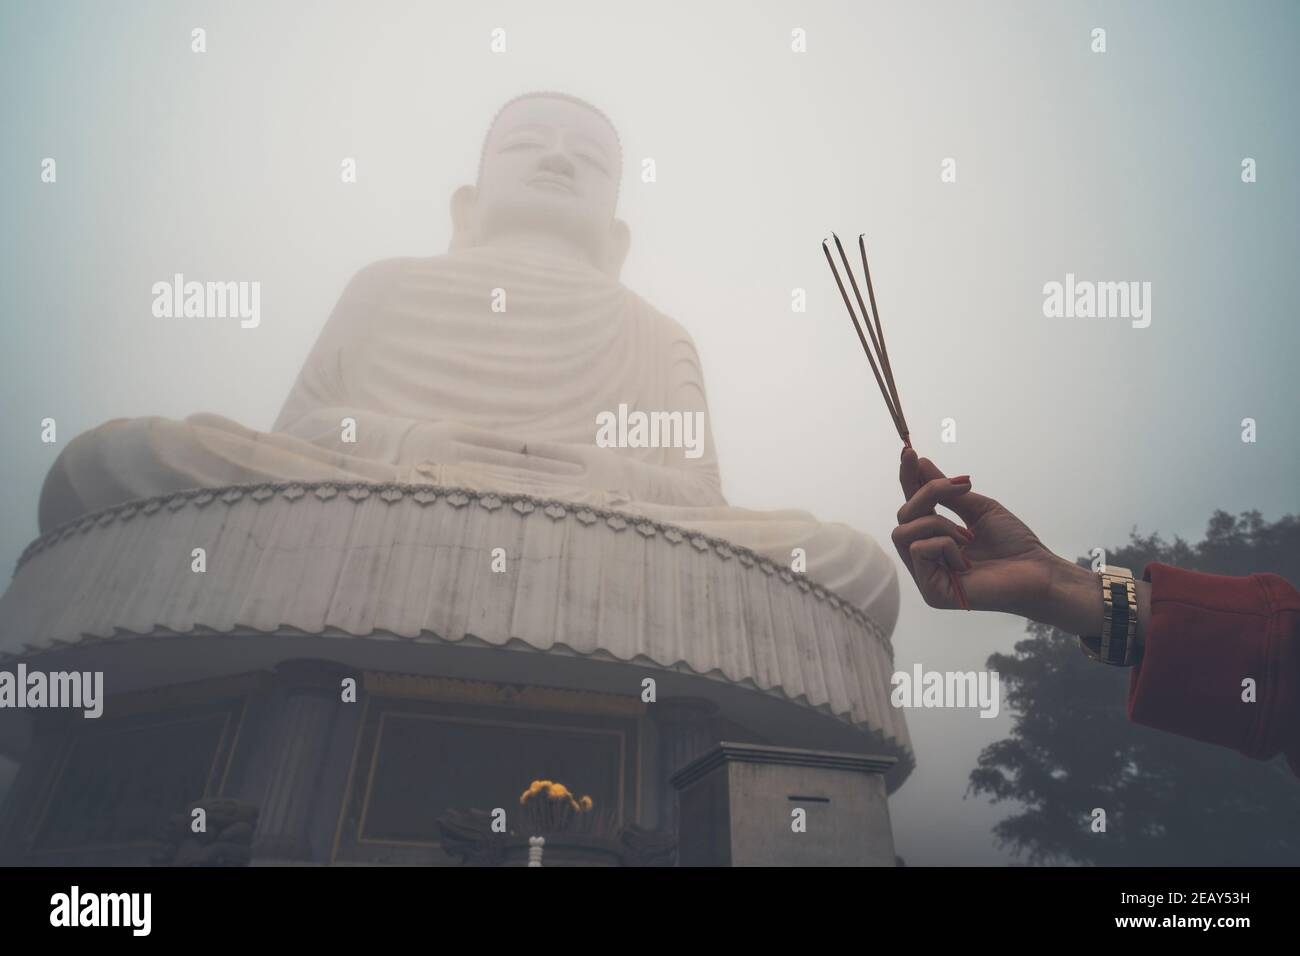 Buddha image with incense. Three incense sticks in a woman's hand against a big Buddha in the fog. Bana hill. Vietnam. Danang. Stock Photo